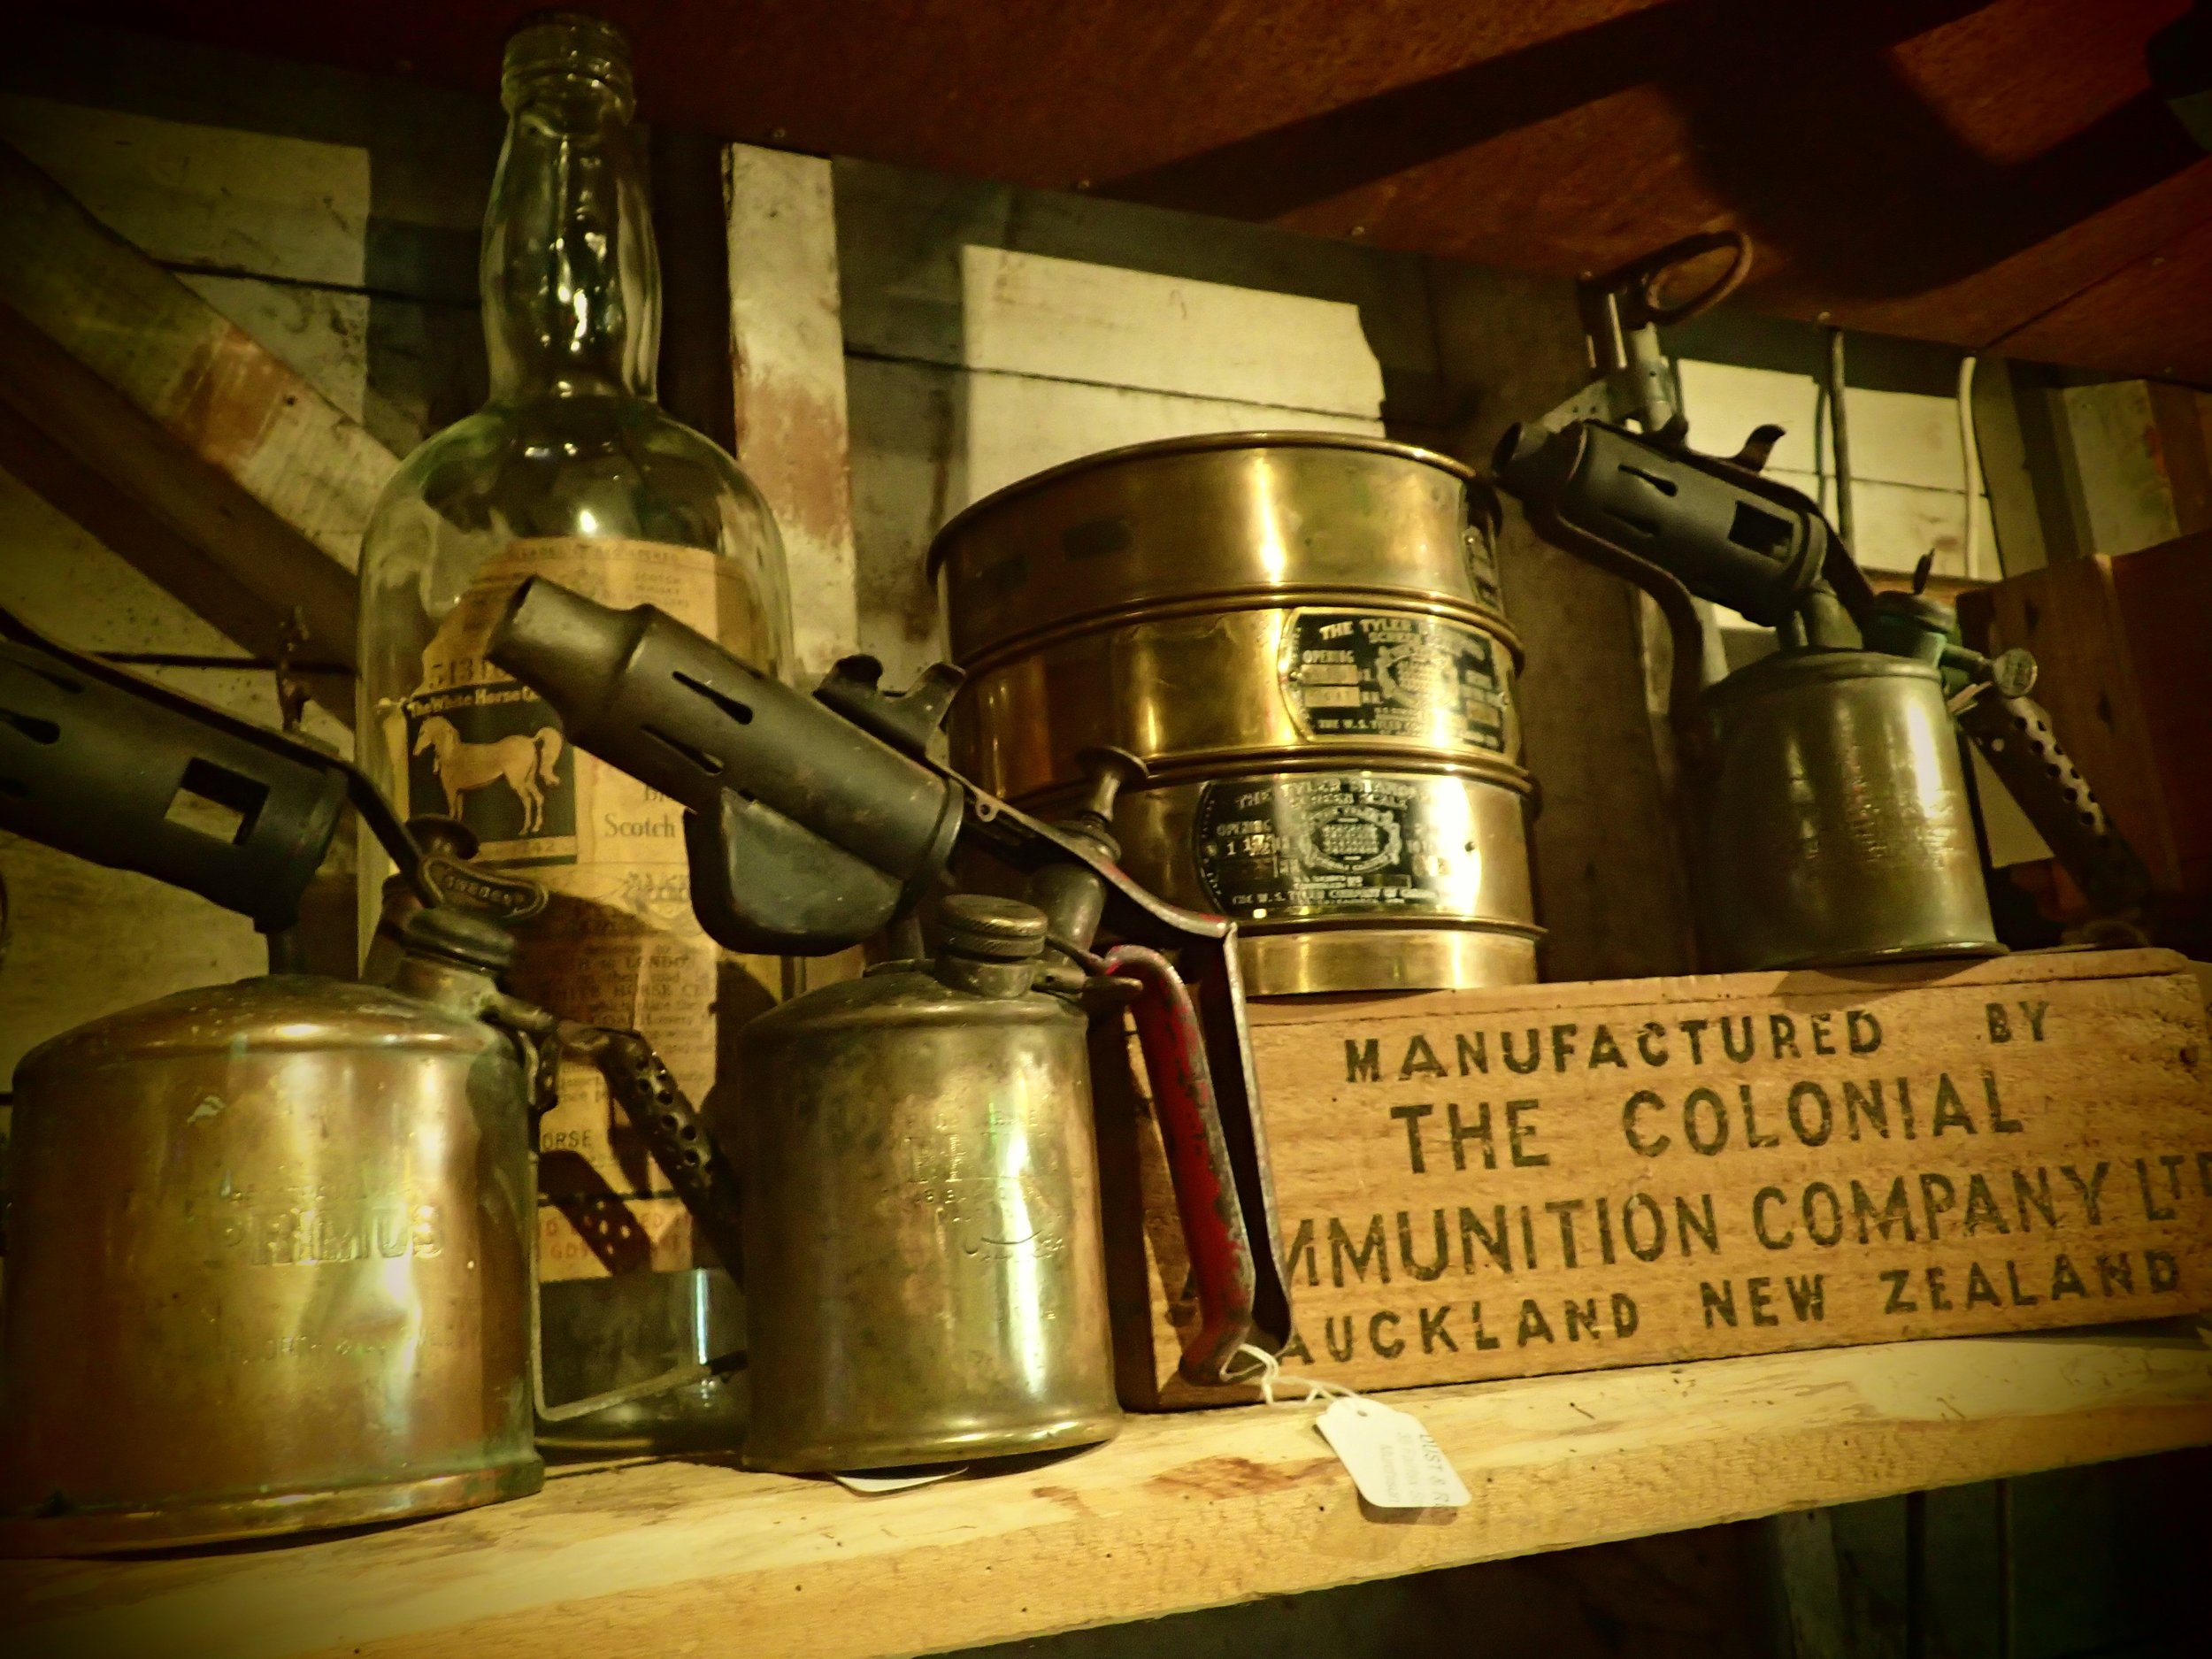 Brass gas blowtorches for a steampunk project or handy tool for the workshop? Brass goldmining sieves, made in Canada.